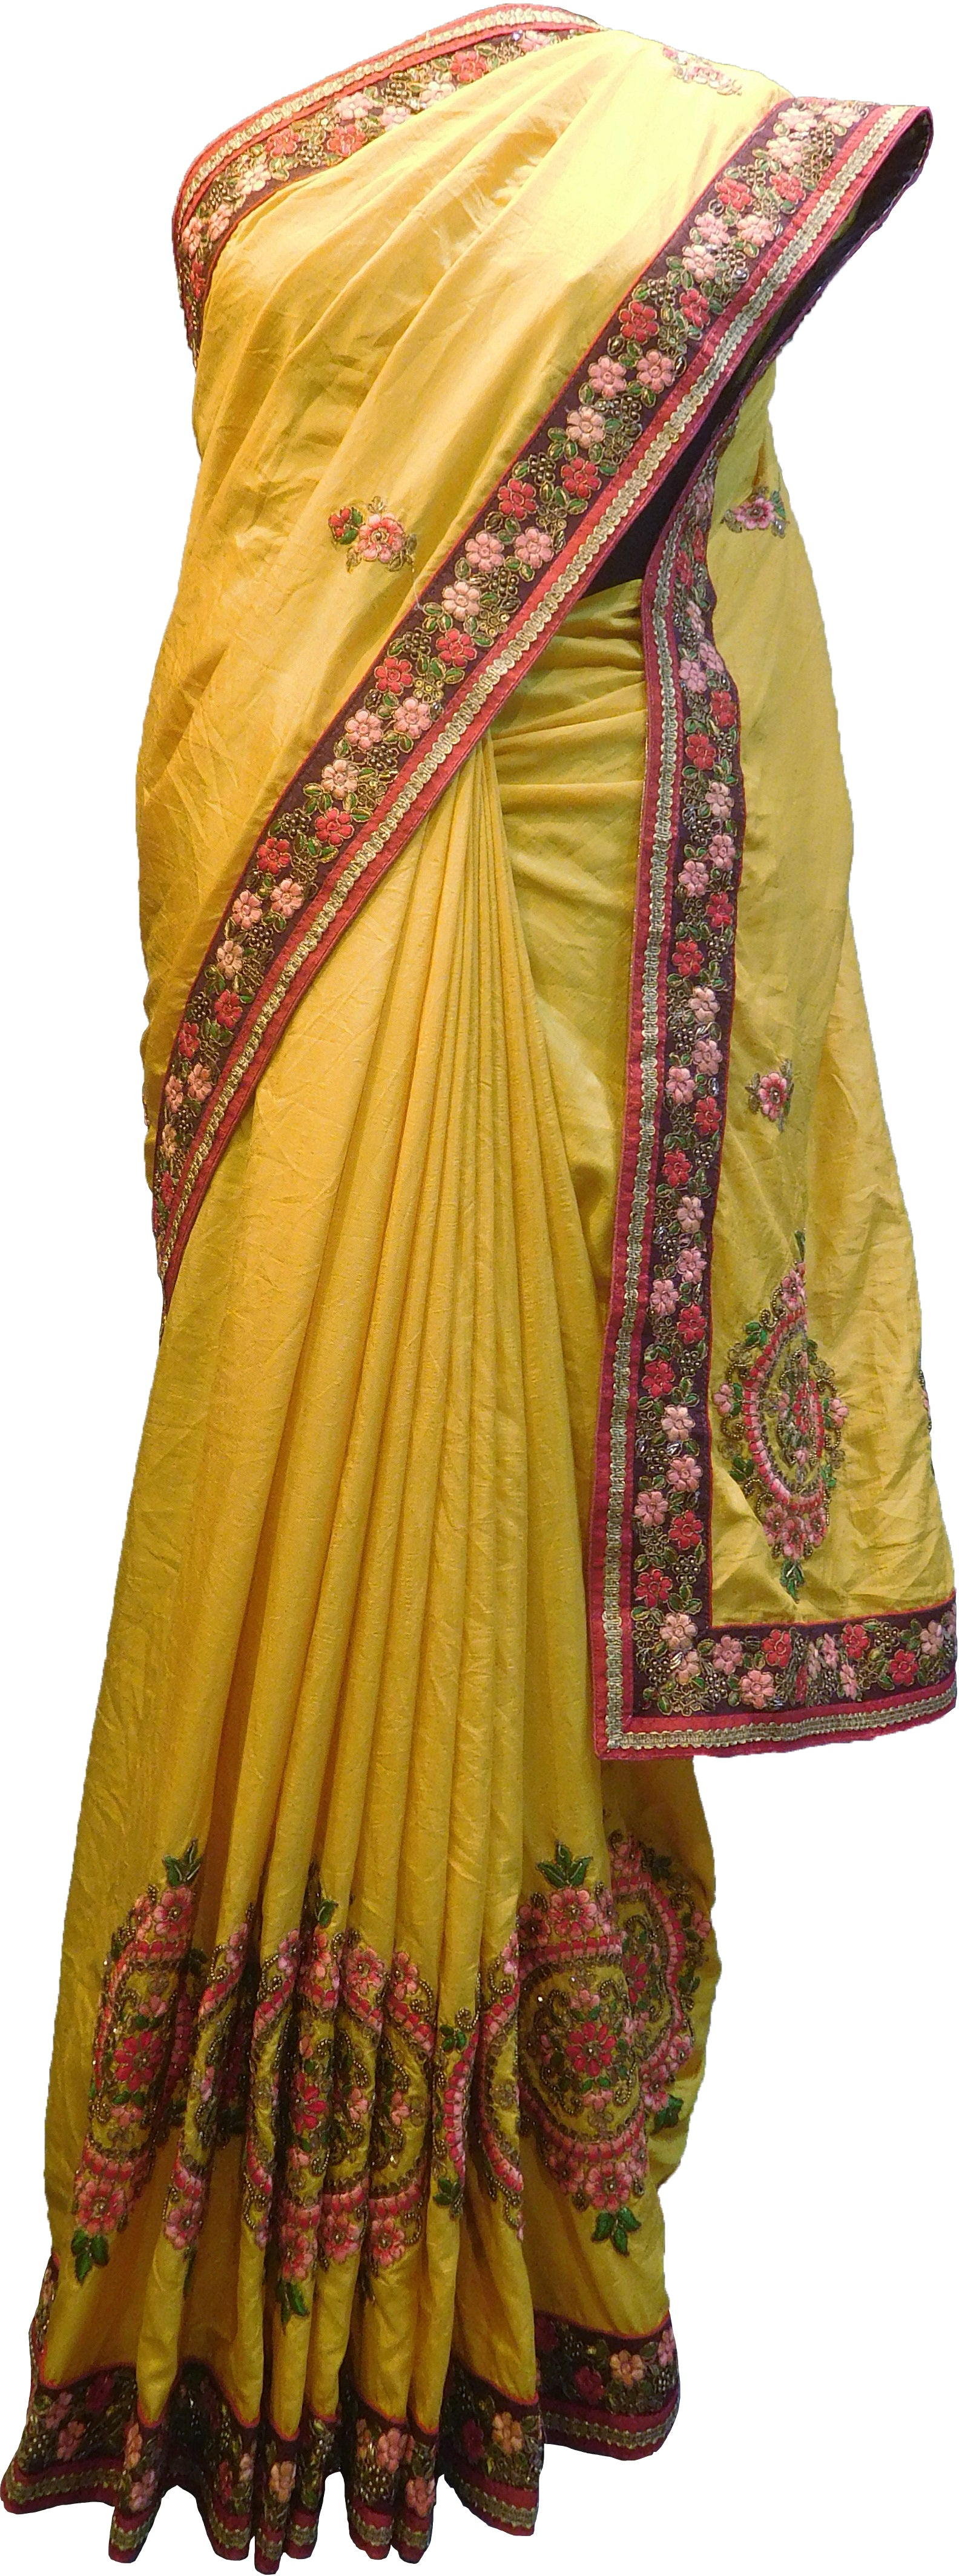 db57e1c4a6 SMSAREE Yellow Designer Wedding Partywear Silk Cutdana Stone Beads Thread  Sequence & Zari Hand Embroidery Work